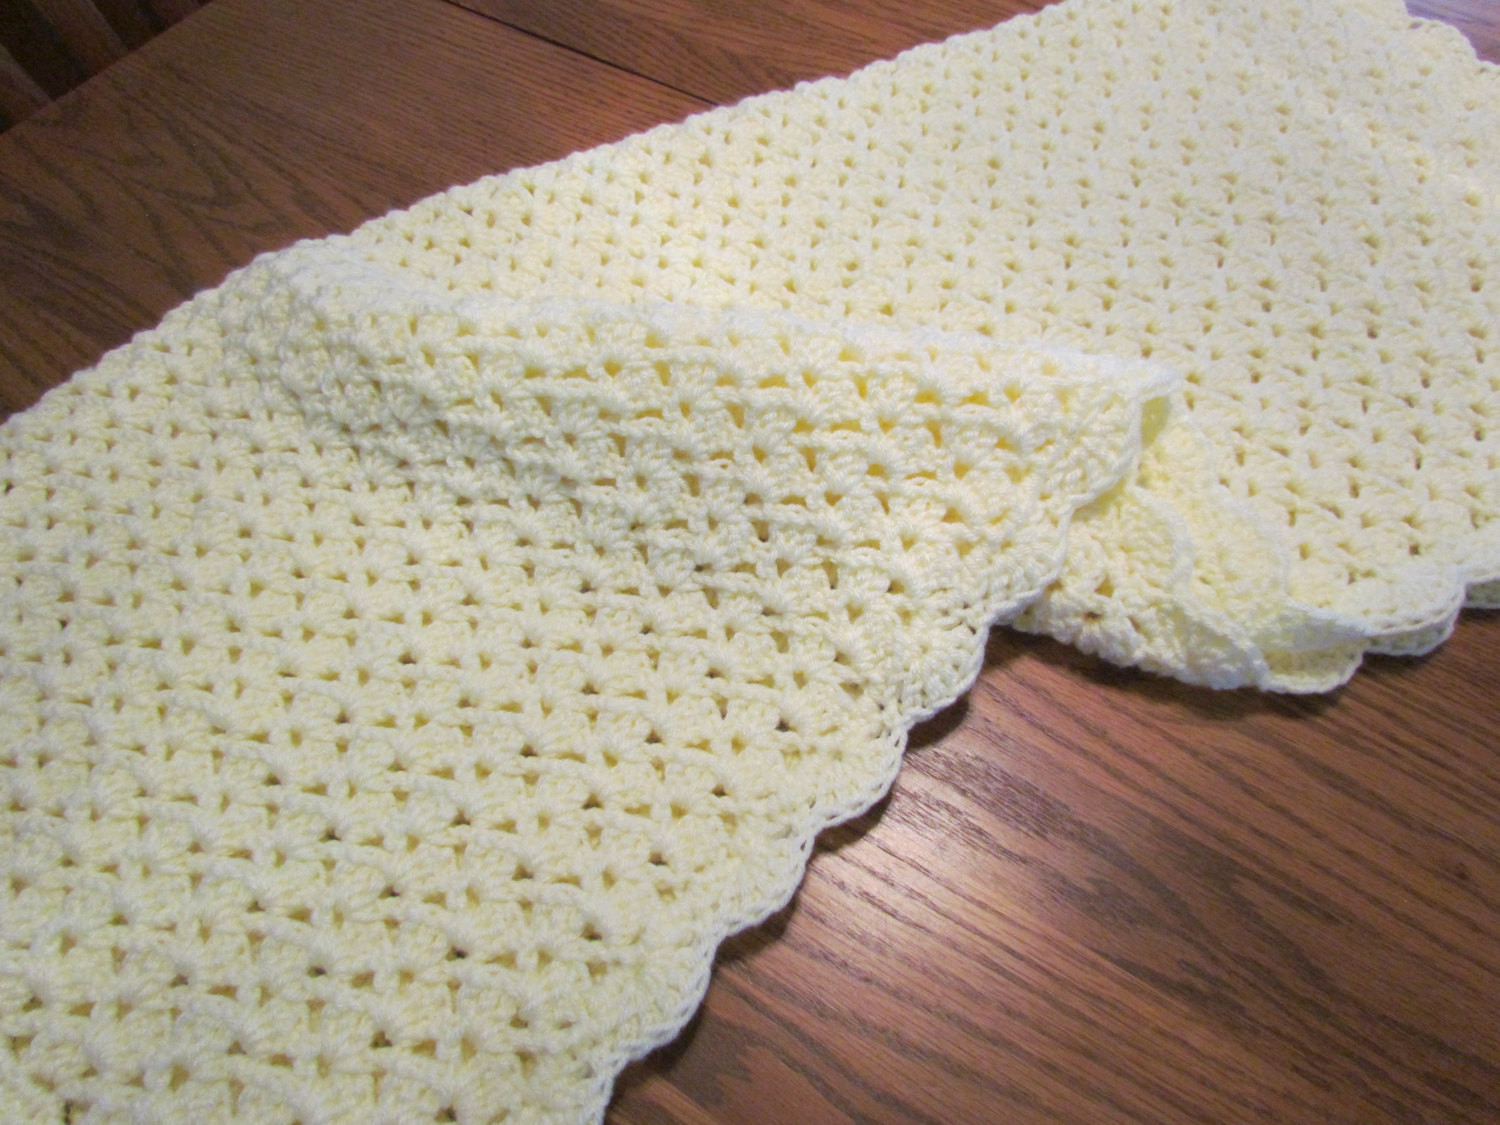 Inspirational Crochet Baby Blanket Shell Stitch Crochet Crib Size Afghan Shell Baby Blanket Of Superb 42 Images Shell Baby Blanket